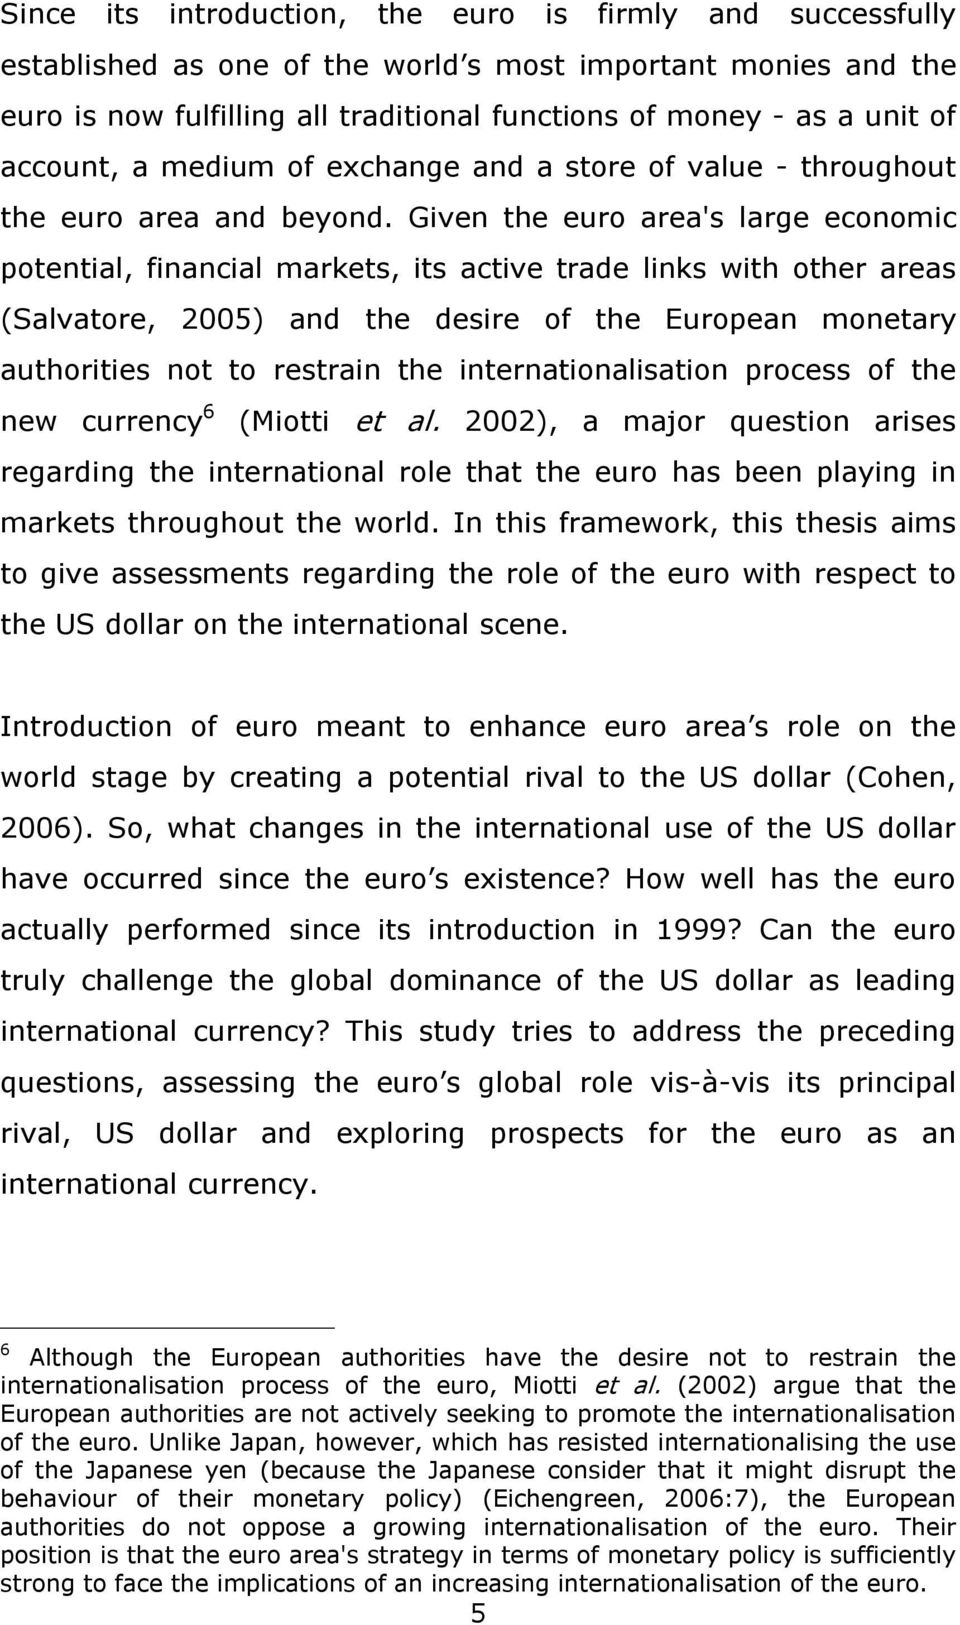 Given the euro area's large economic potential, financial markets, its active trade links with other areas (Salvatore, 2005) and the desire of the European monetary authorities not to restrain the